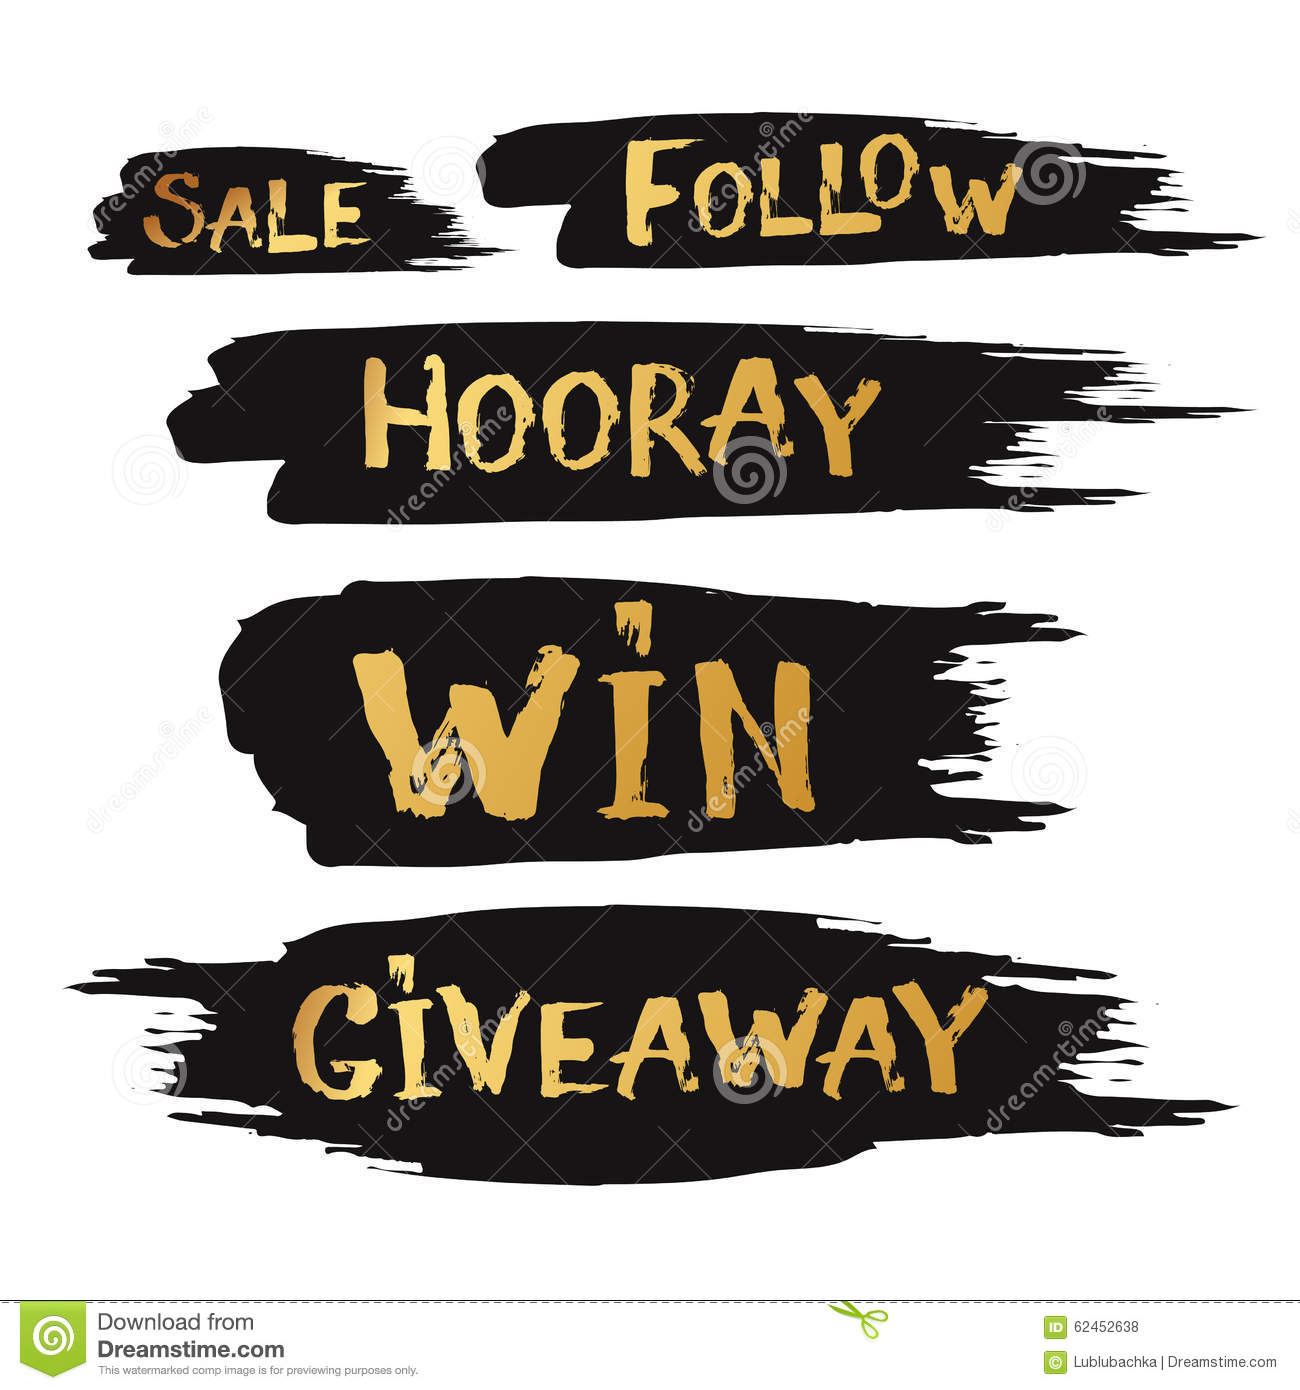 Giveaway And Special Sale Offer With Hand Drawn Lettering